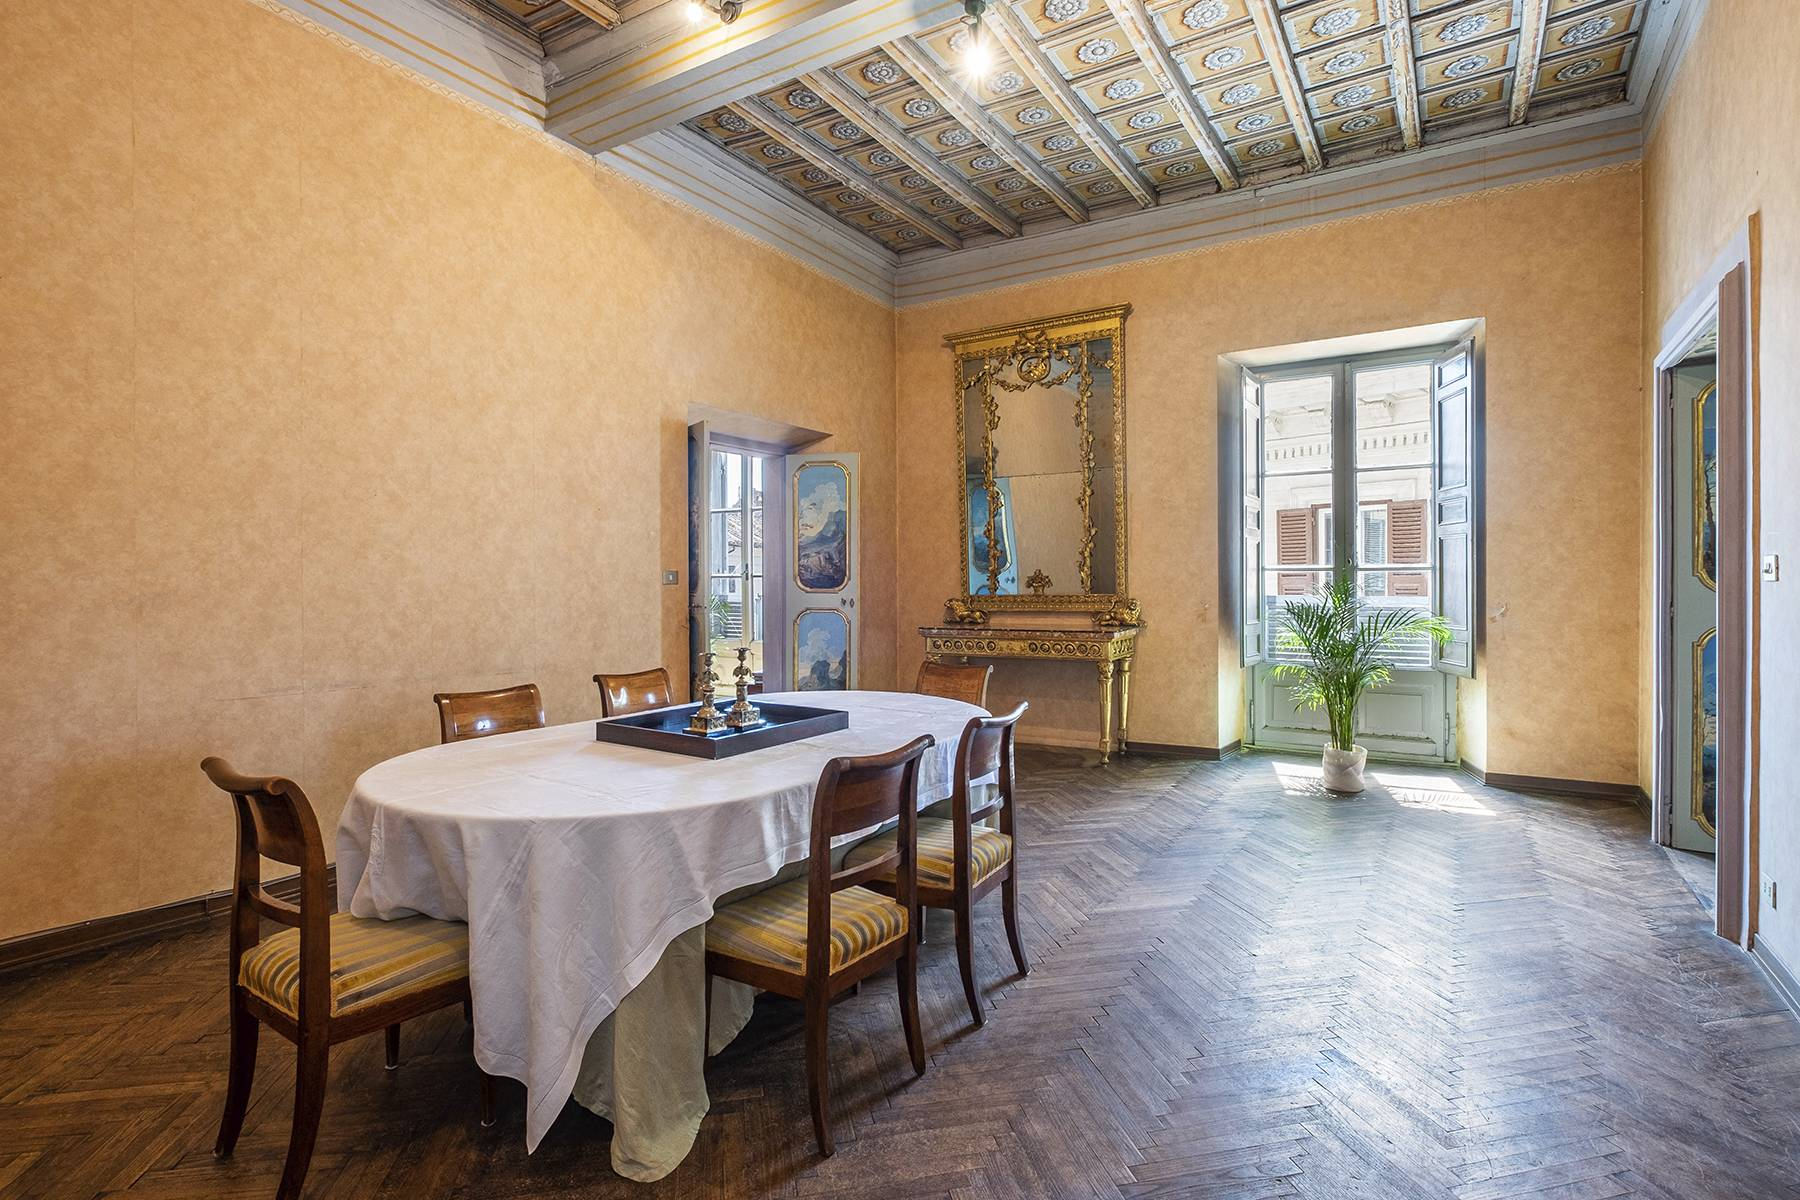 Magnificent apartment in historical property - 15